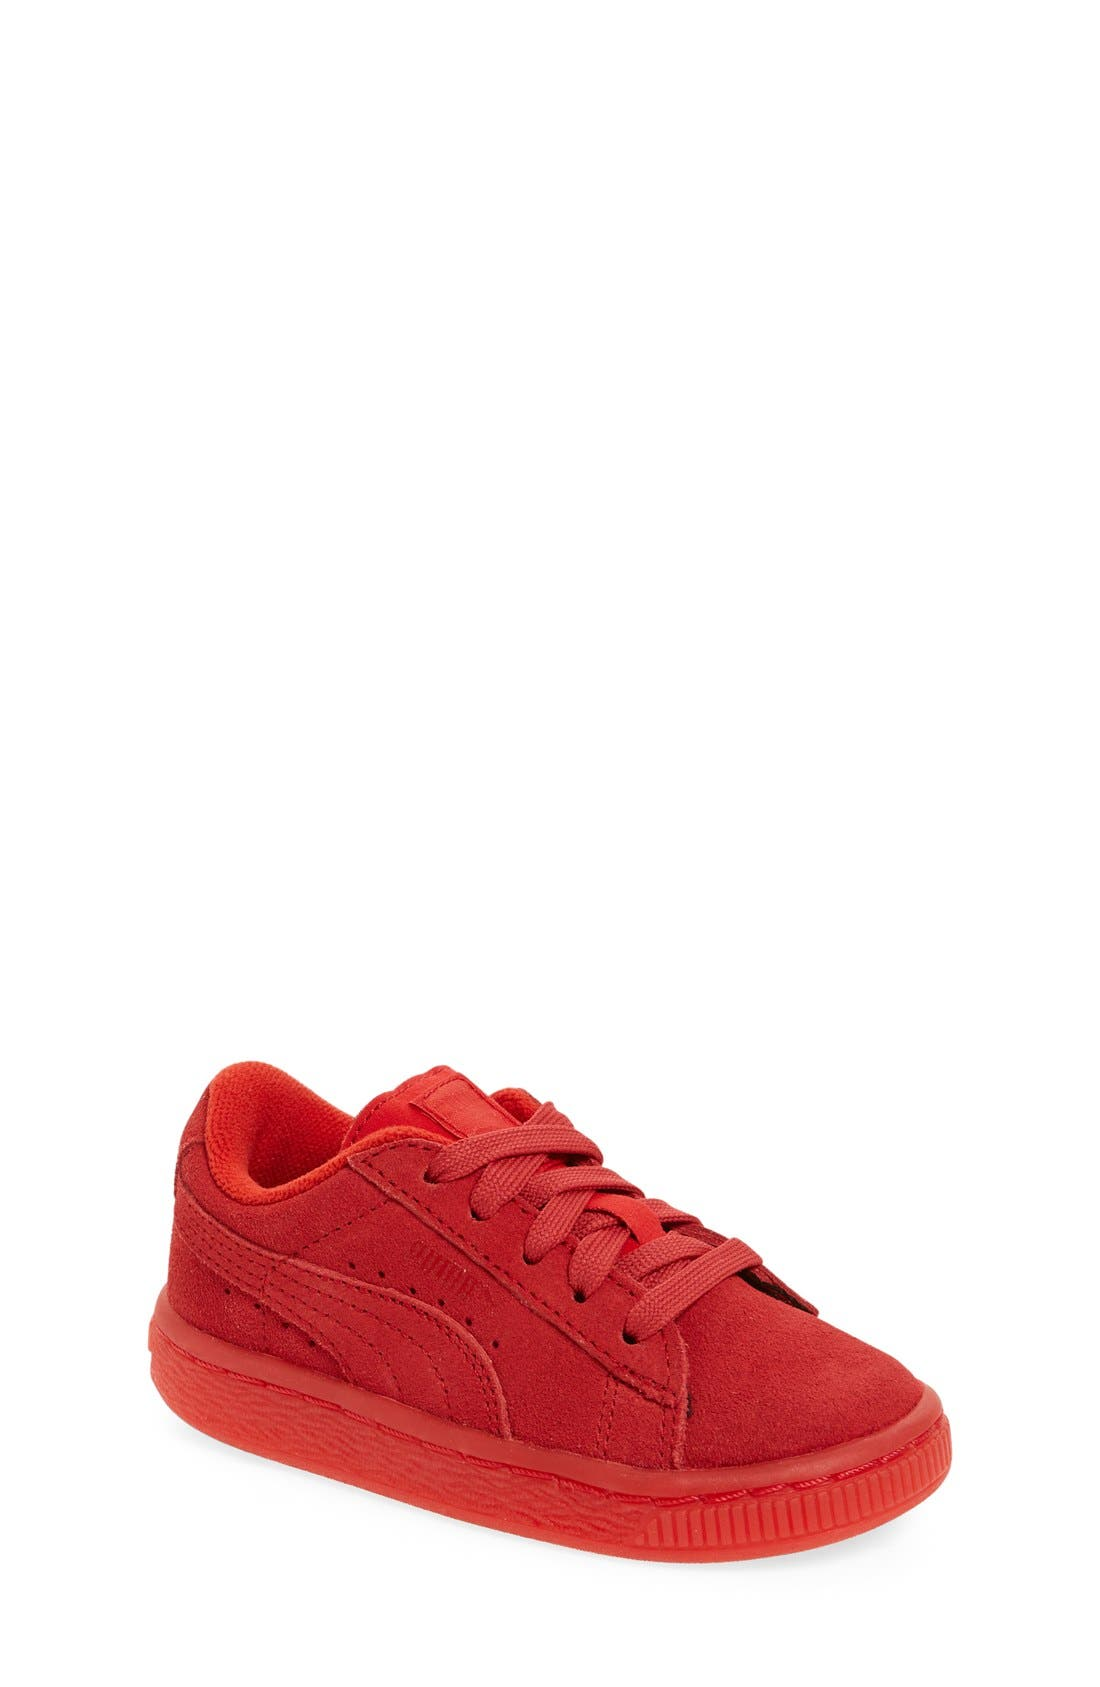 'Suede Iced' Sneaker,                         Main,                         color, Red